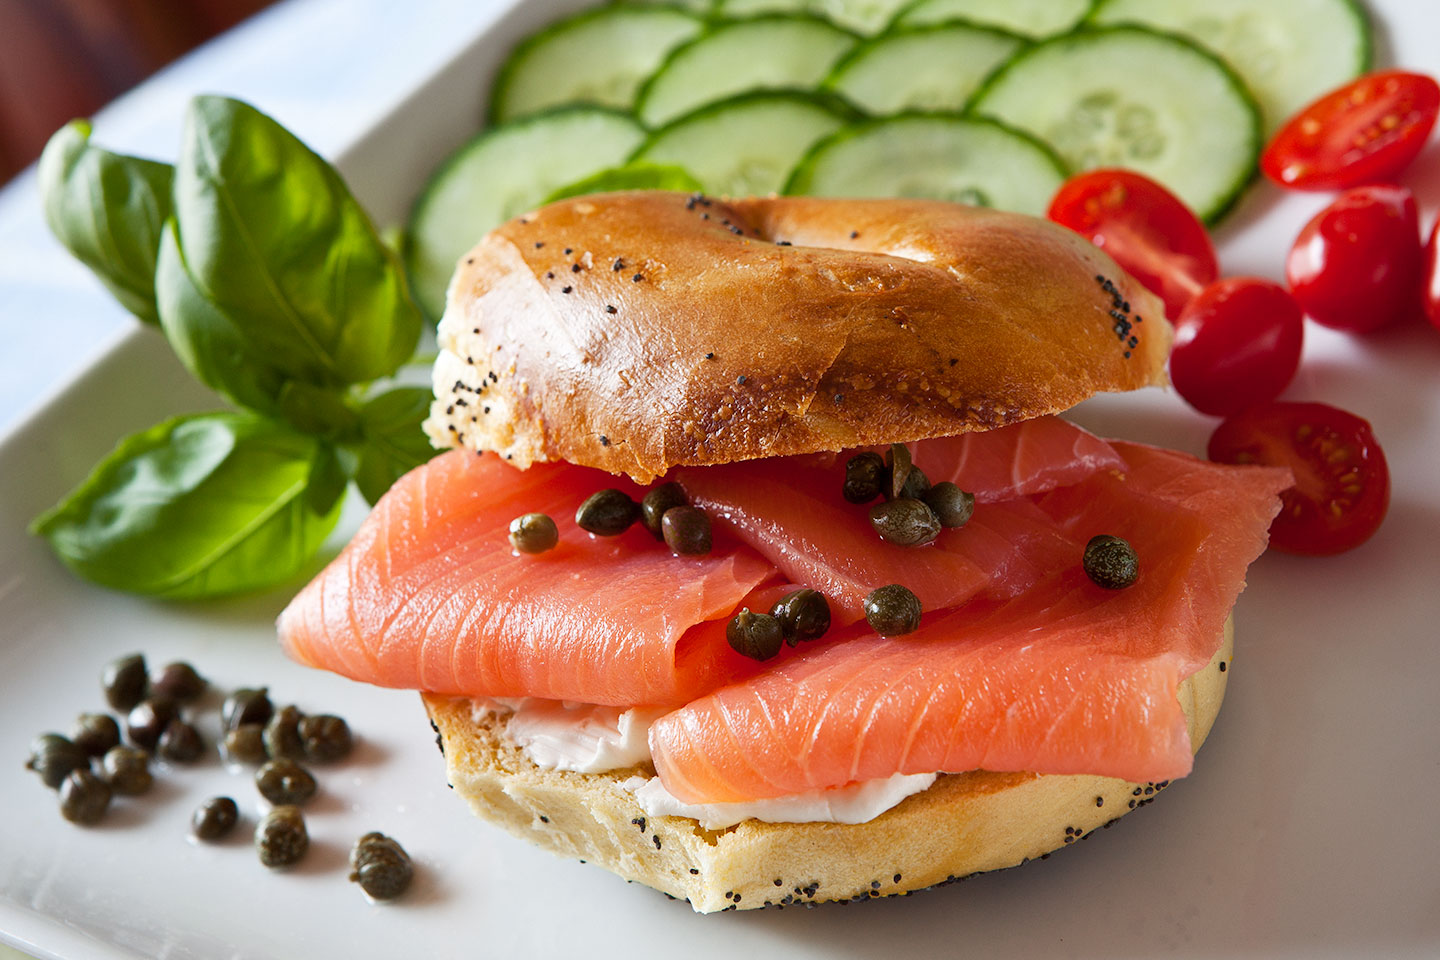 Lox, Bagels and Pickles, oh my!